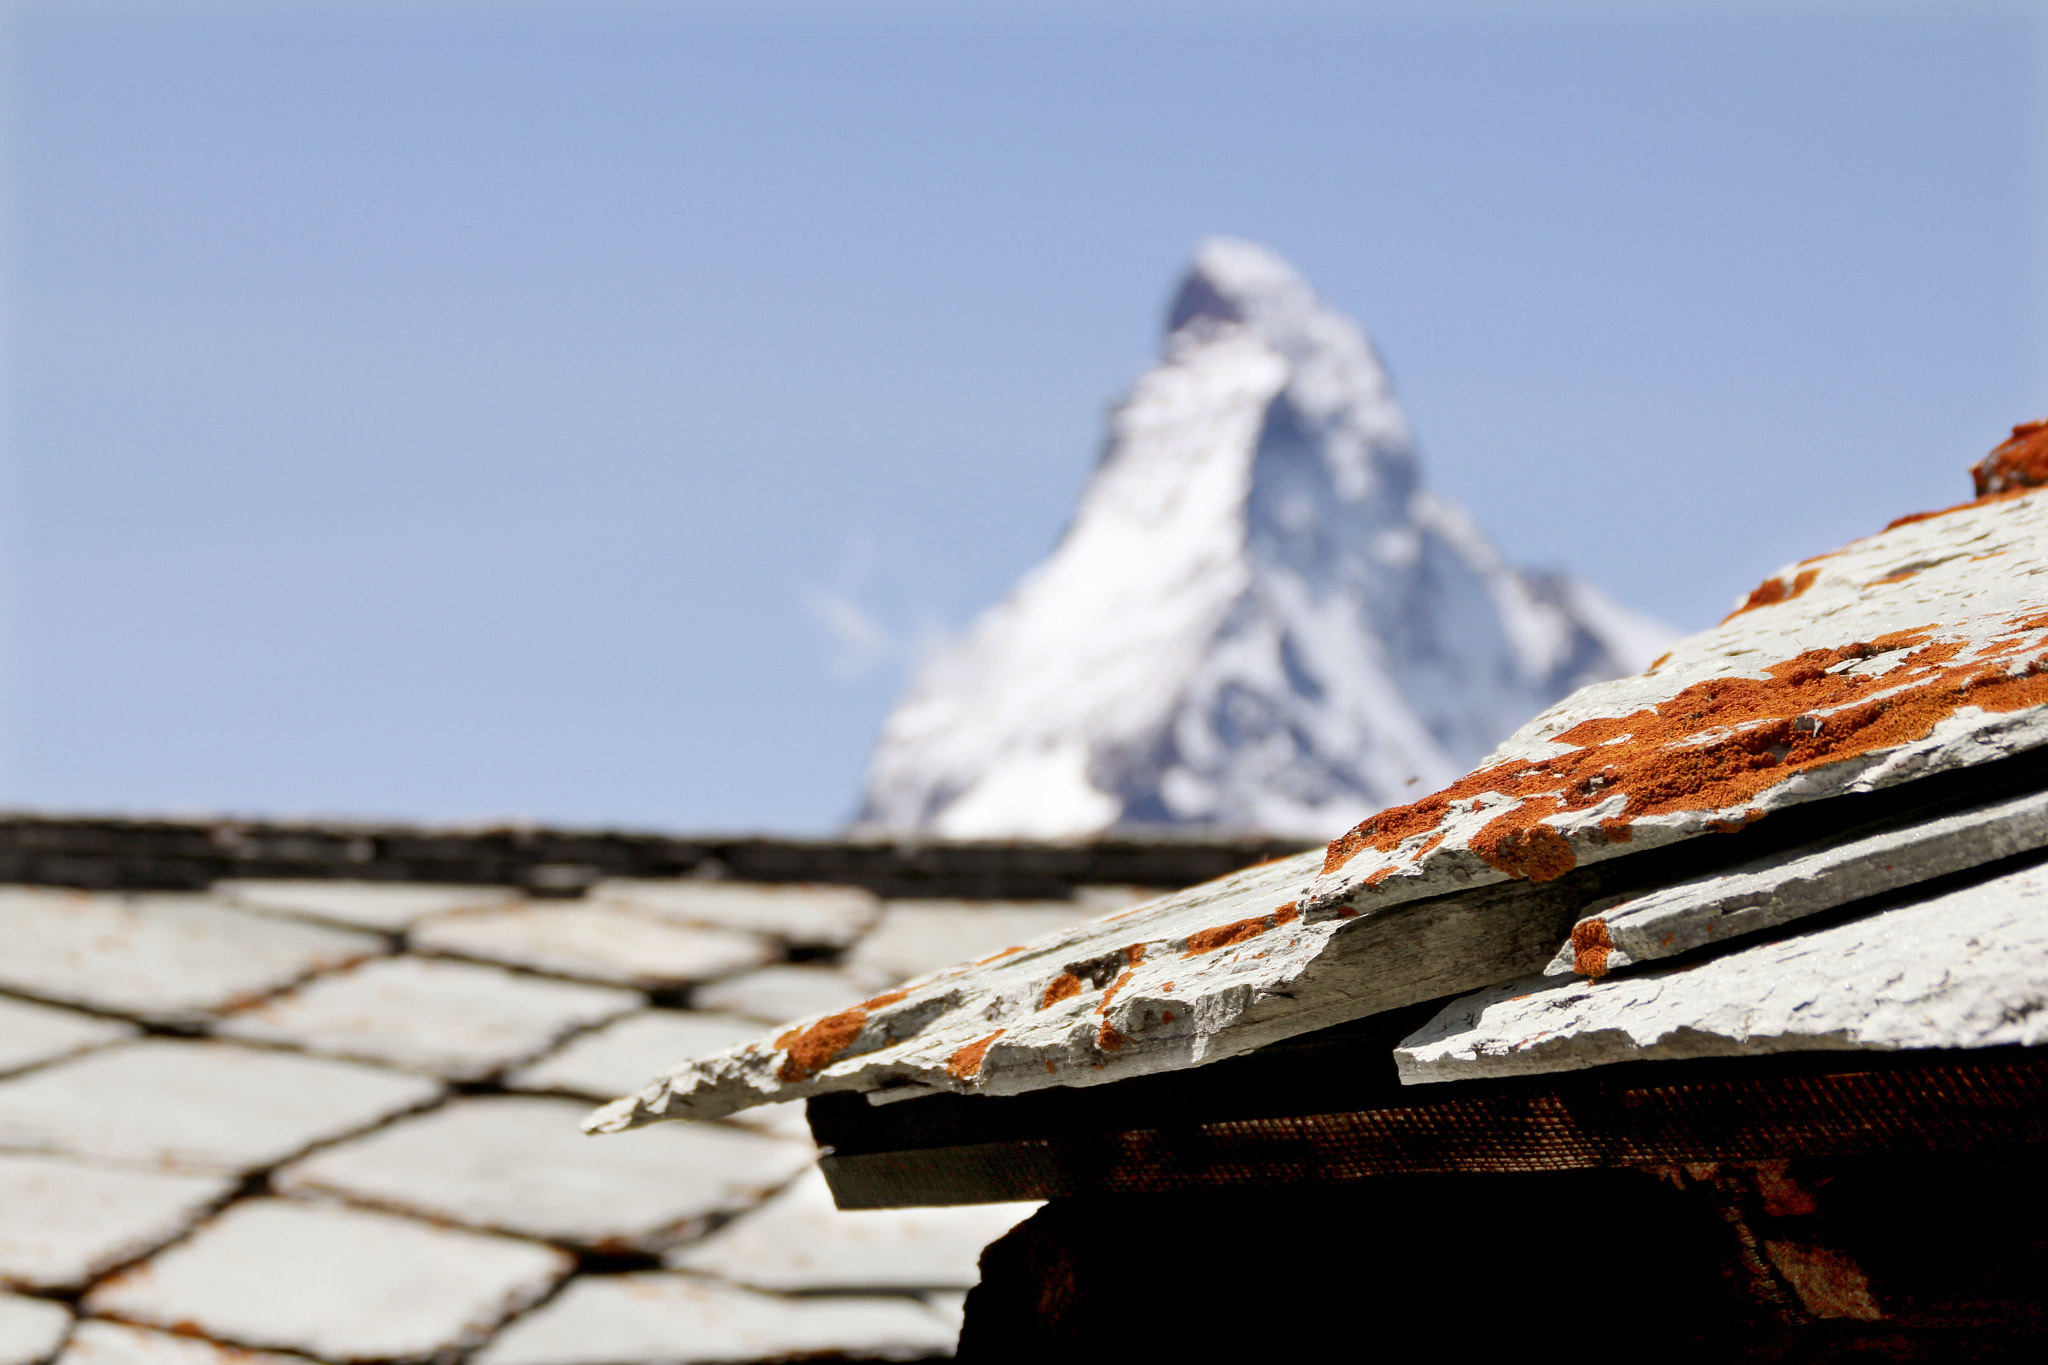 Photograph On top of the roof by Dietmar Pursch on 500px